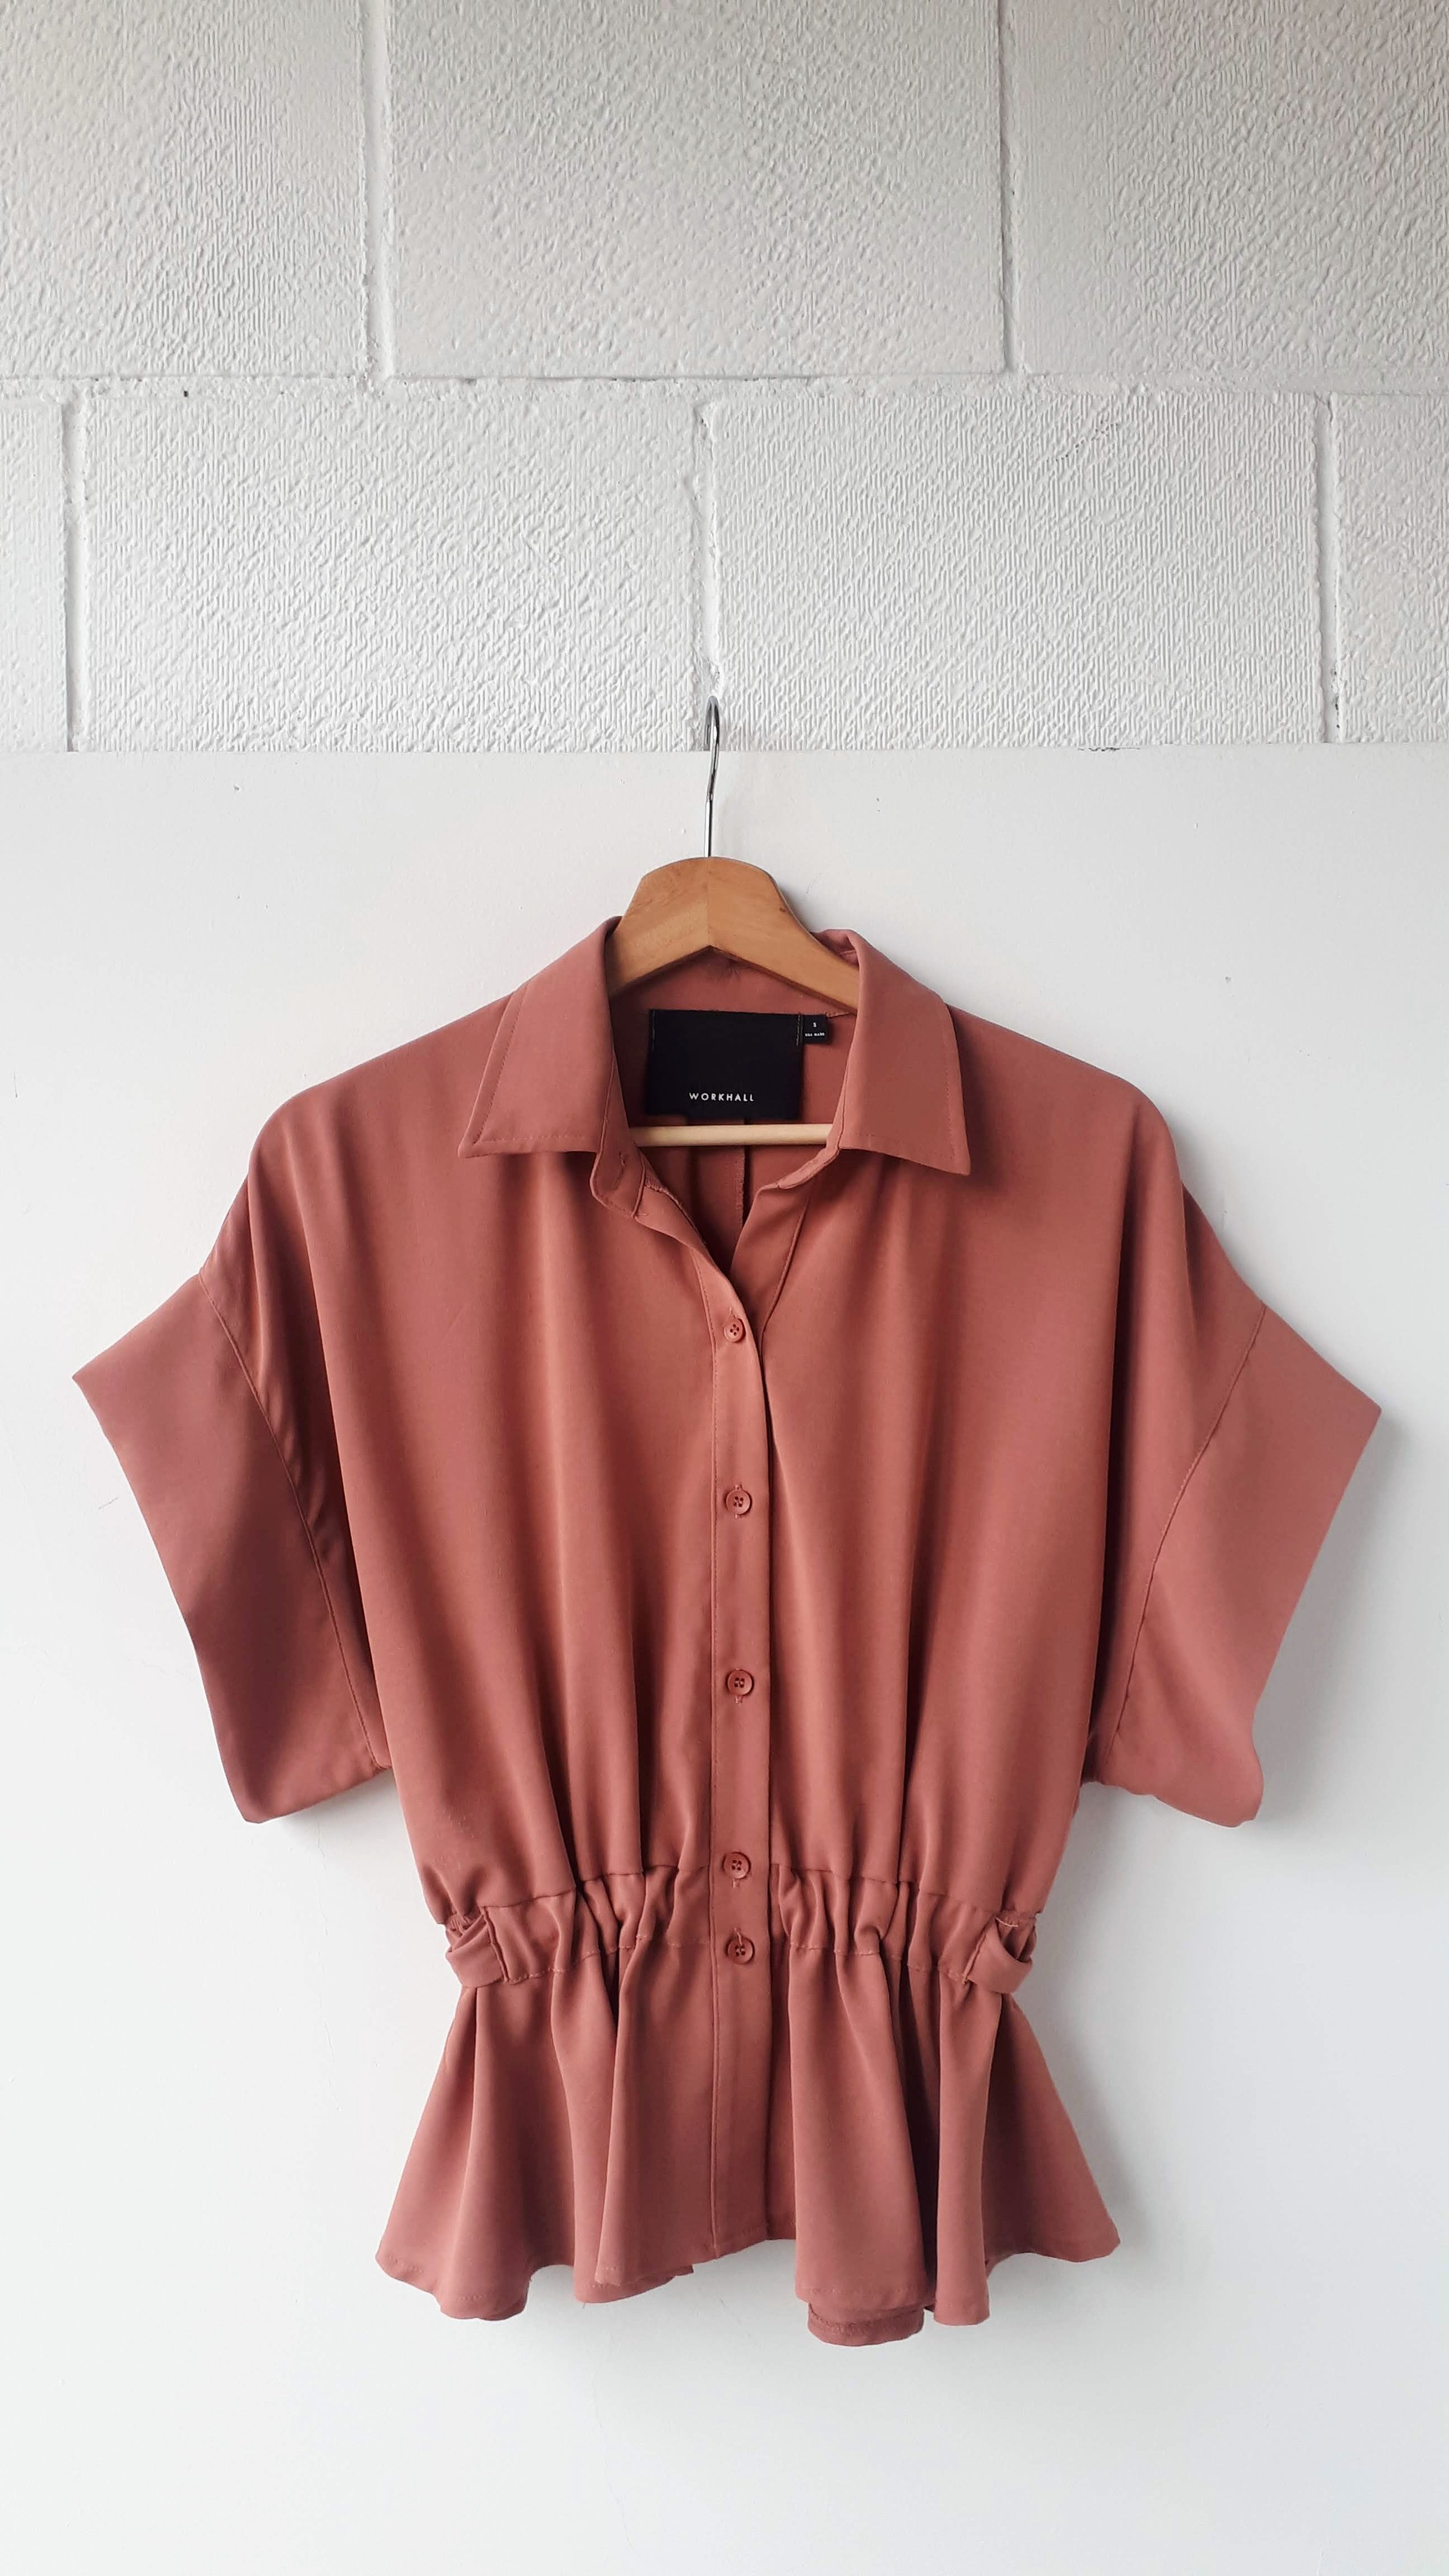 Workhall top; Size S, $38